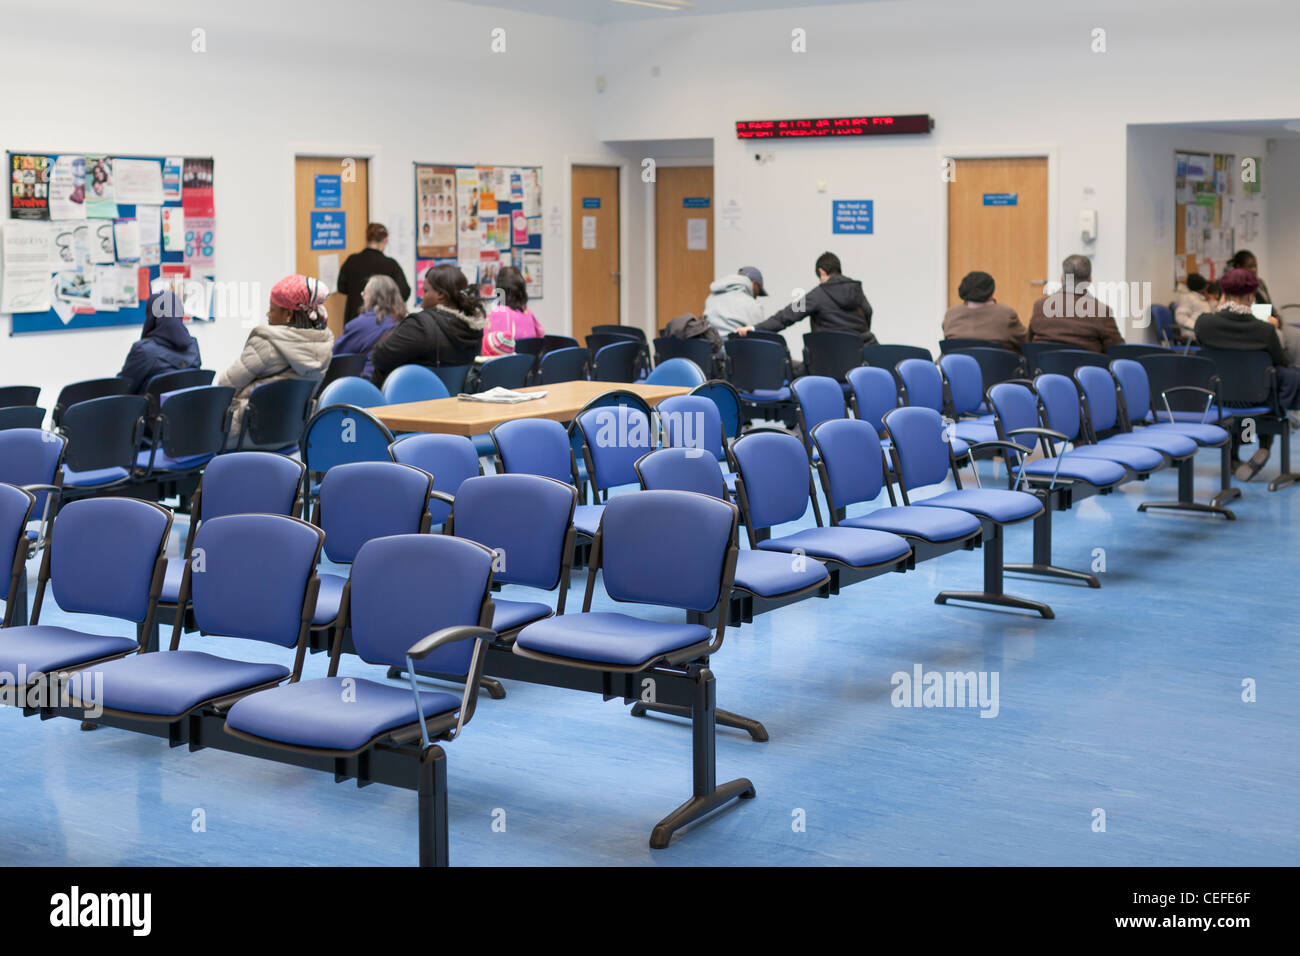 People In A Hospital Waiting Room